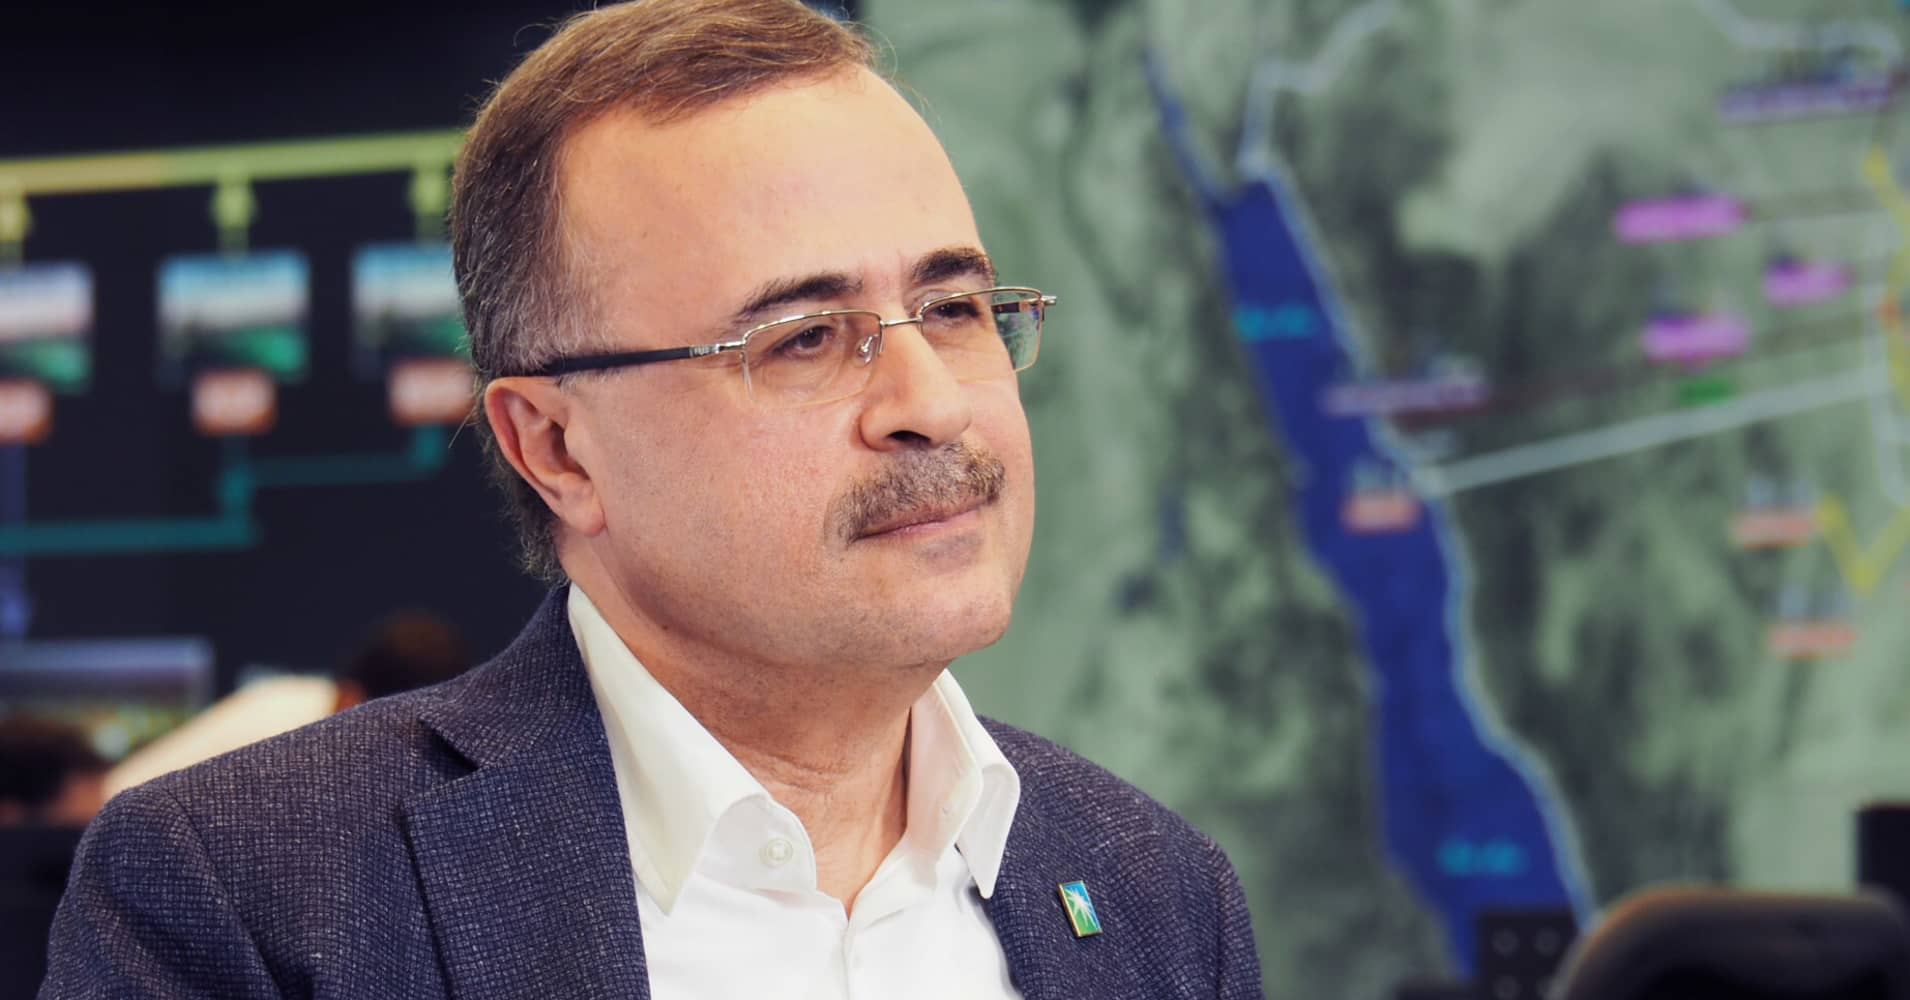 Saudi Aramco's IPO, the world's largest ever, is 'on track' for 2018, CEO Amin Nasser says